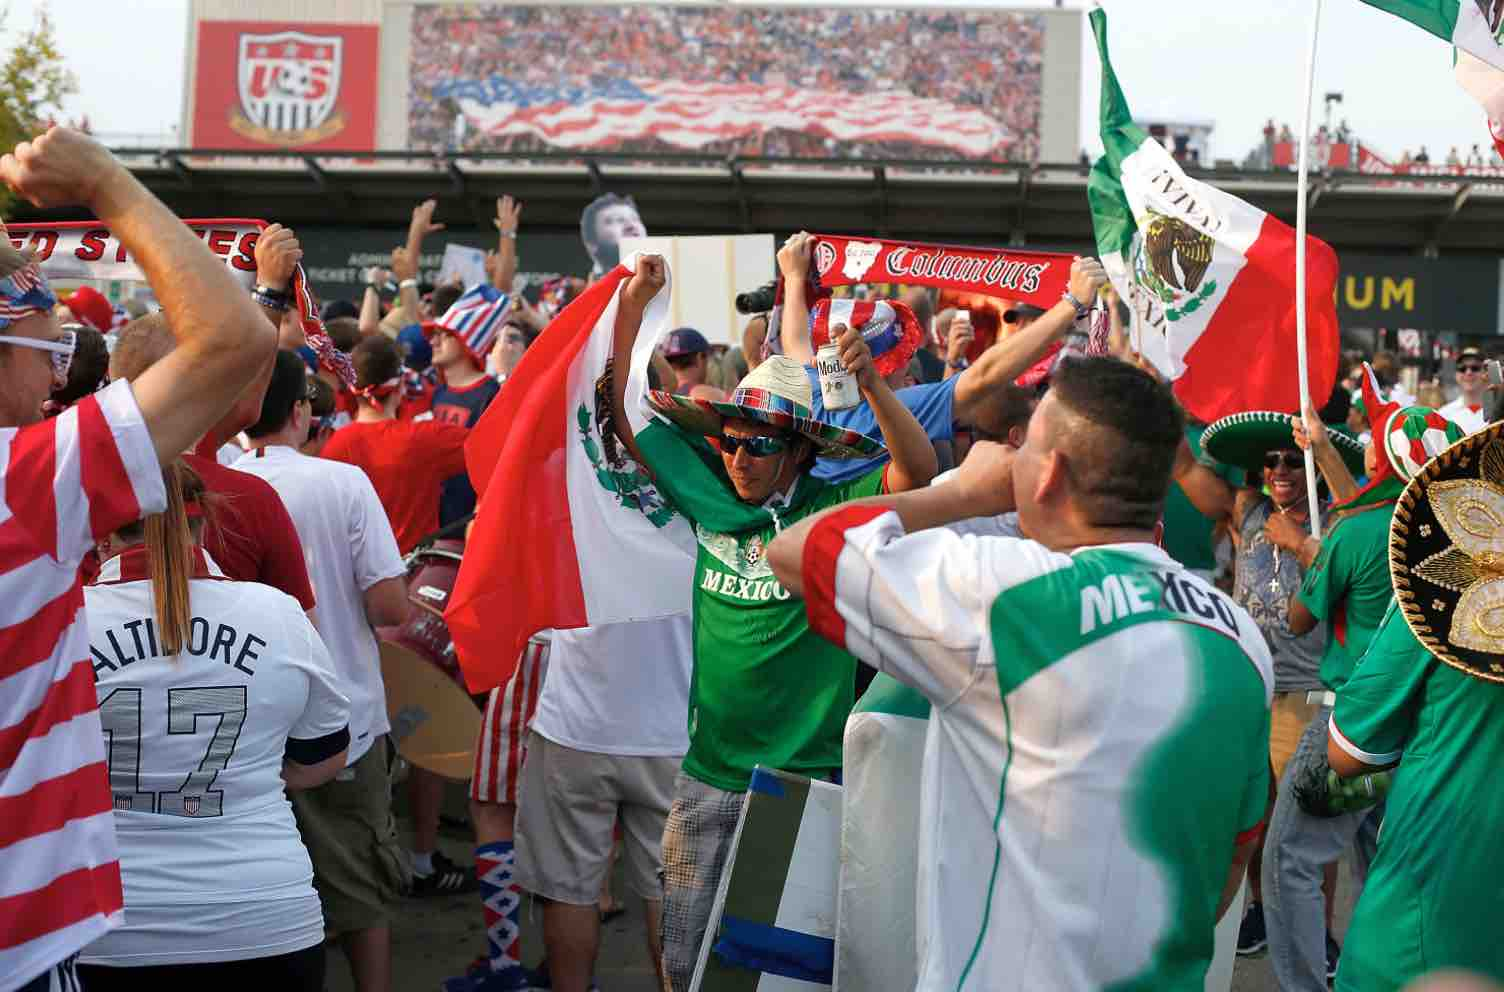 U.S vs. Mexico playoff game postponed